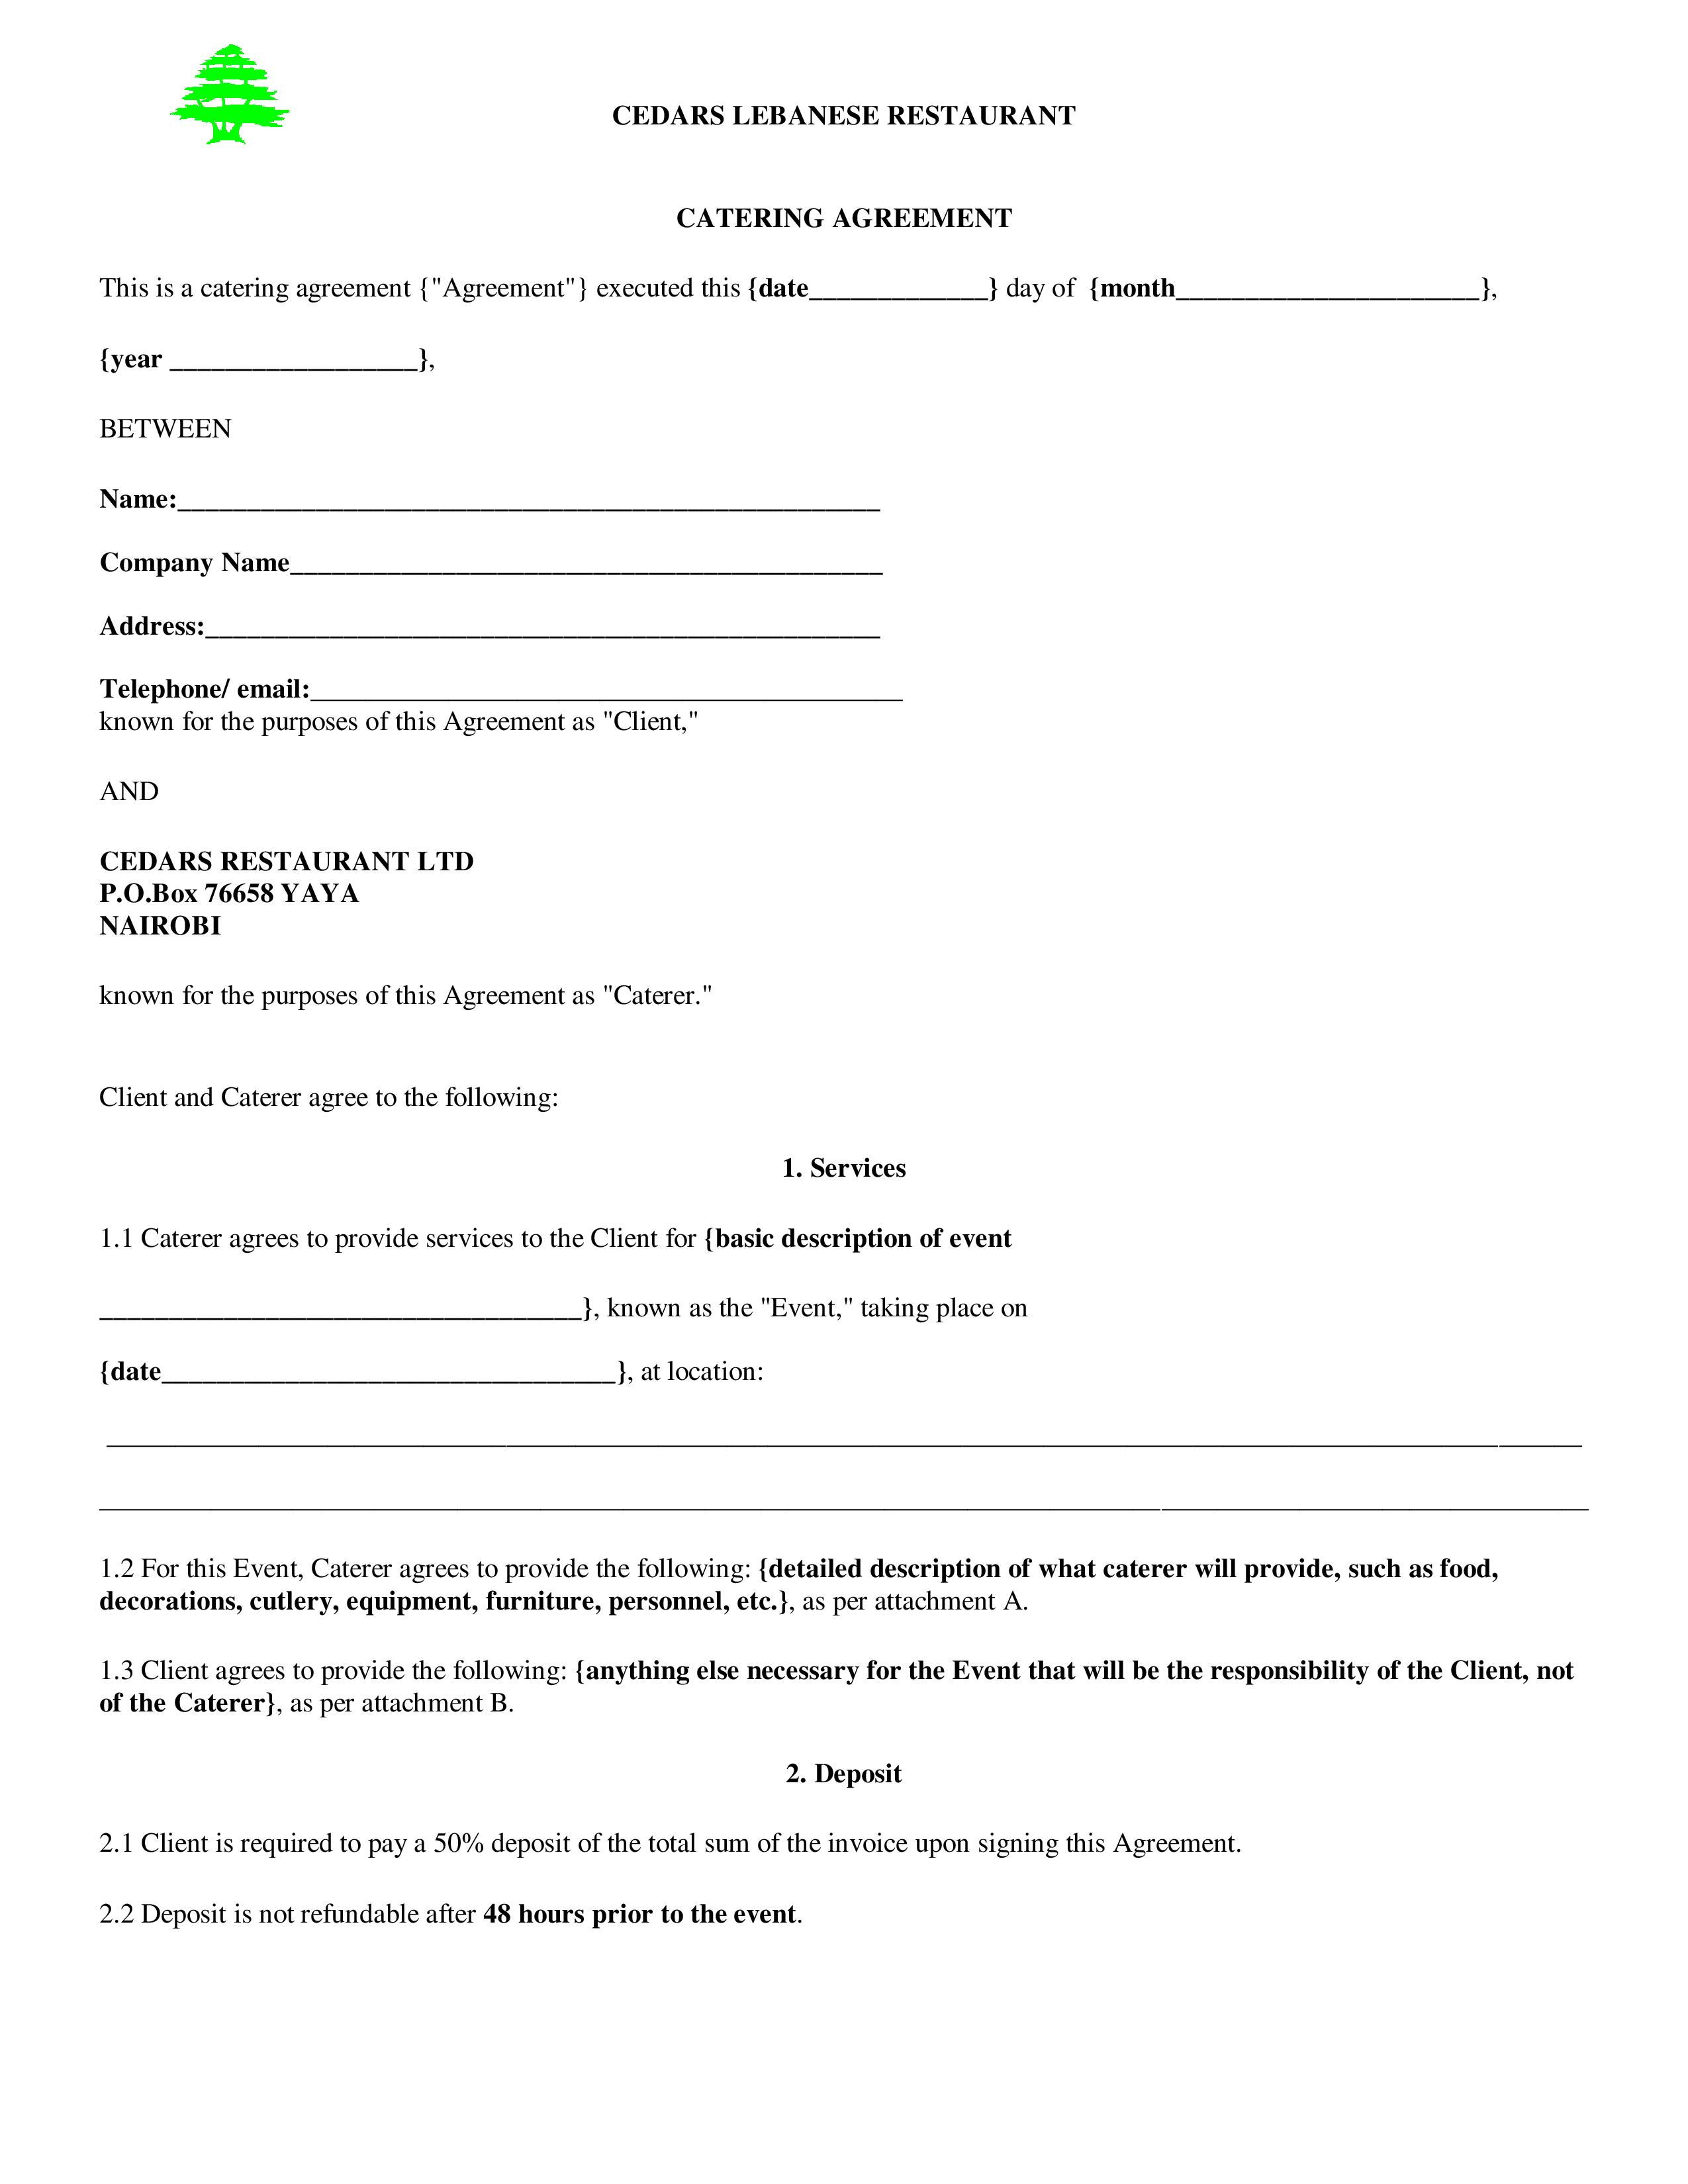 Catering Agreement Templates